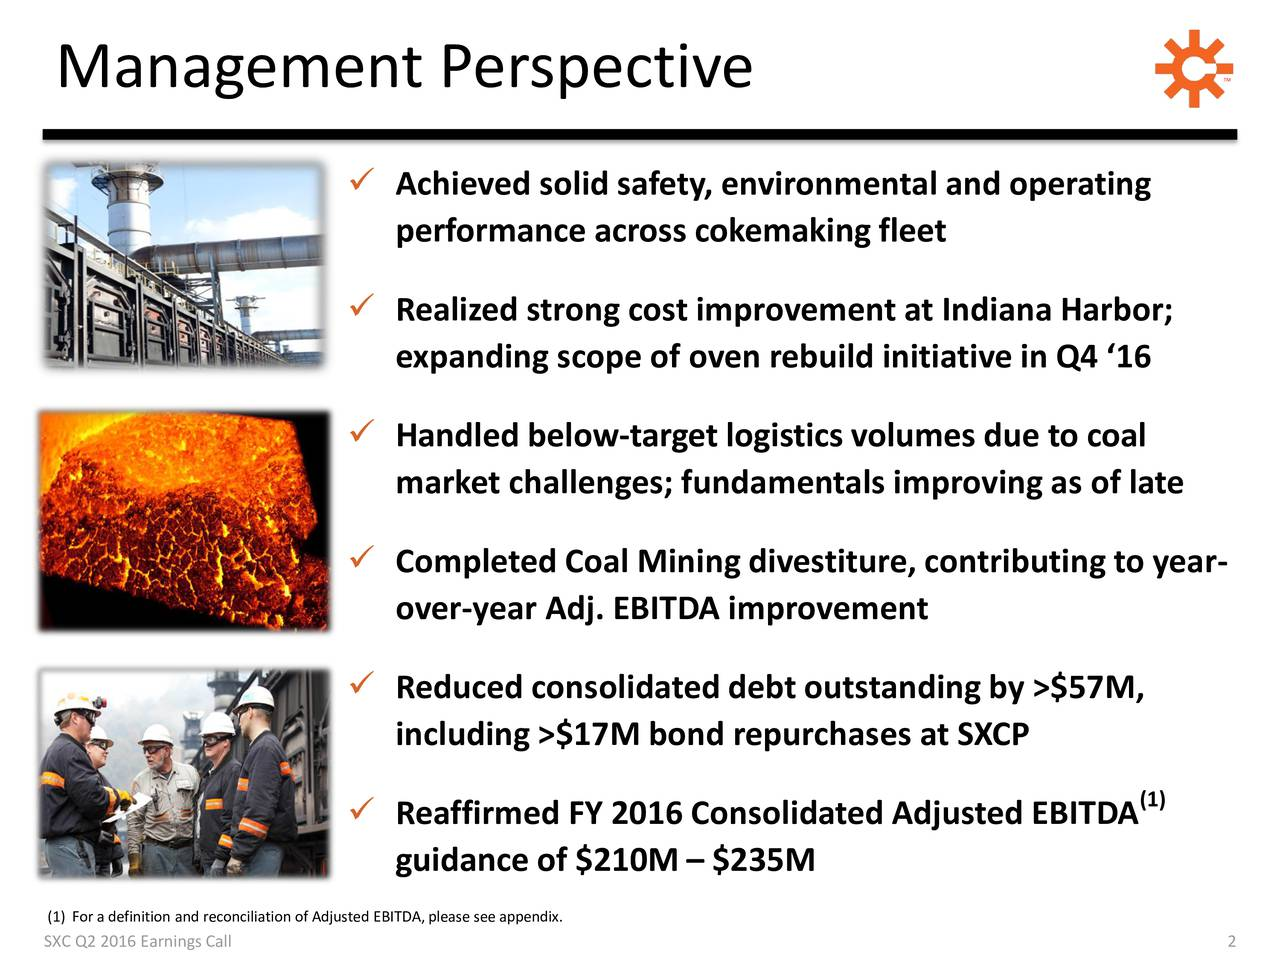 Achieved solid safety, environmental and operating performance across cokemaking fleet Realized strong cost improvement at Indiana Harbor; expanding scope of oven rebuild initiative in Q4 16 Handled below-target logistics volumes due to coal market challenges; fundamentals improving as of late Completed Coal Mining divestiture, contributing to year- over-year Adj. EBITDA improvement Reduced consolidated debt outstanding by >$57M, including >$17M bond repurchases at SXCP (1) Reaffirmed FY 2016 Consolidated Adjusted EBITDA guidance of $210M  $235M (1) For a definition and reconciliation of Adjusted EBITDA, please see appendix.